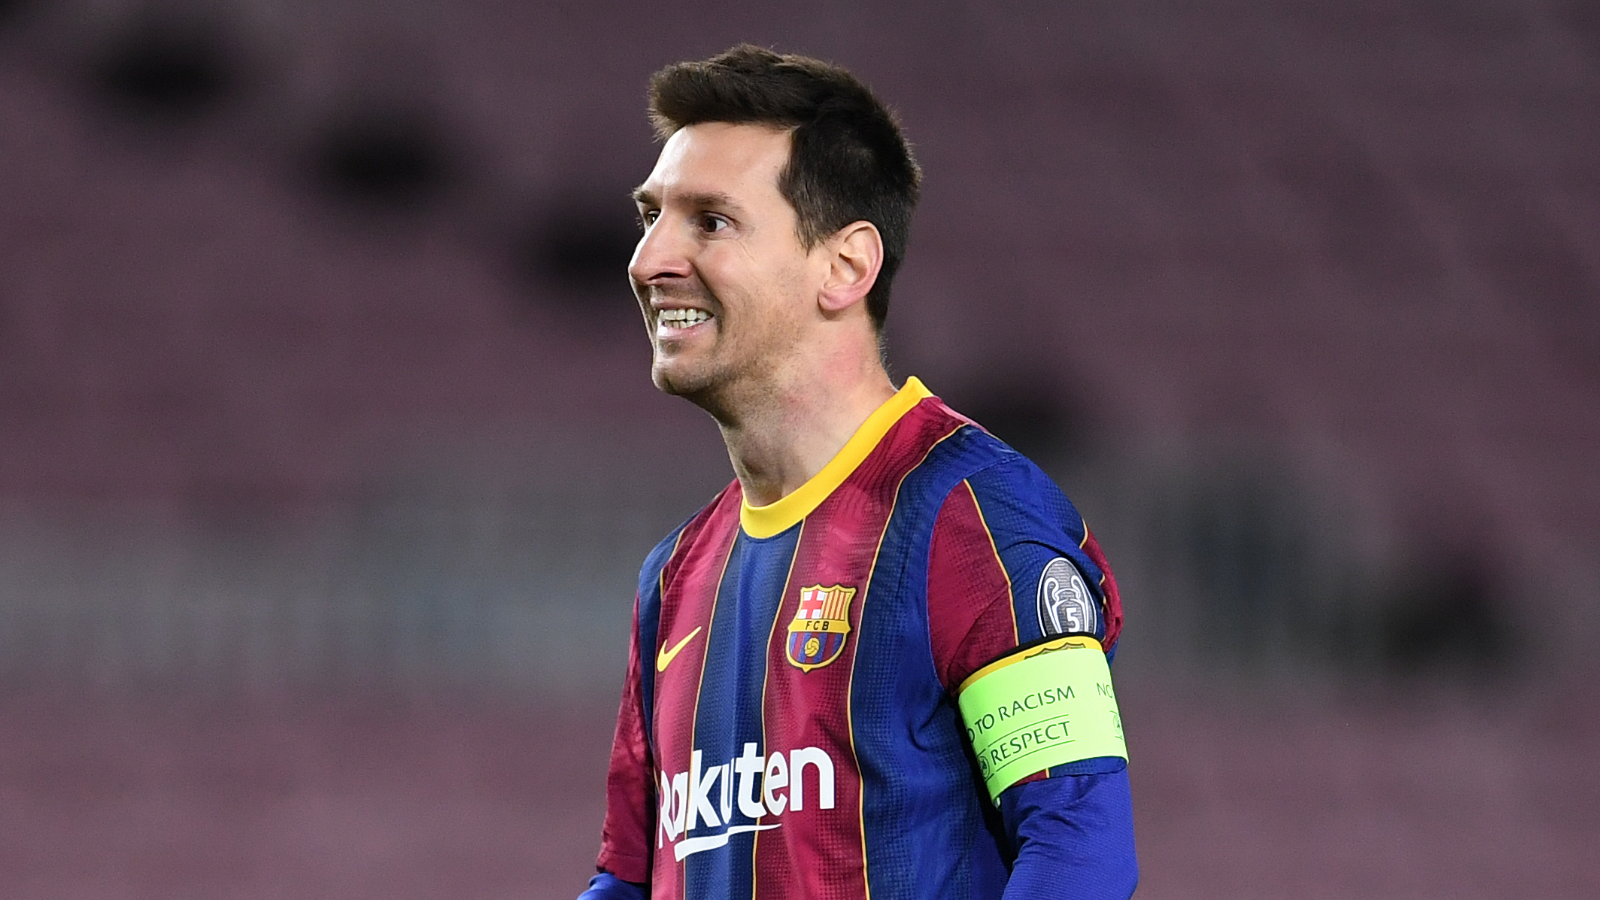 Laporta wanted Messi to play for free.